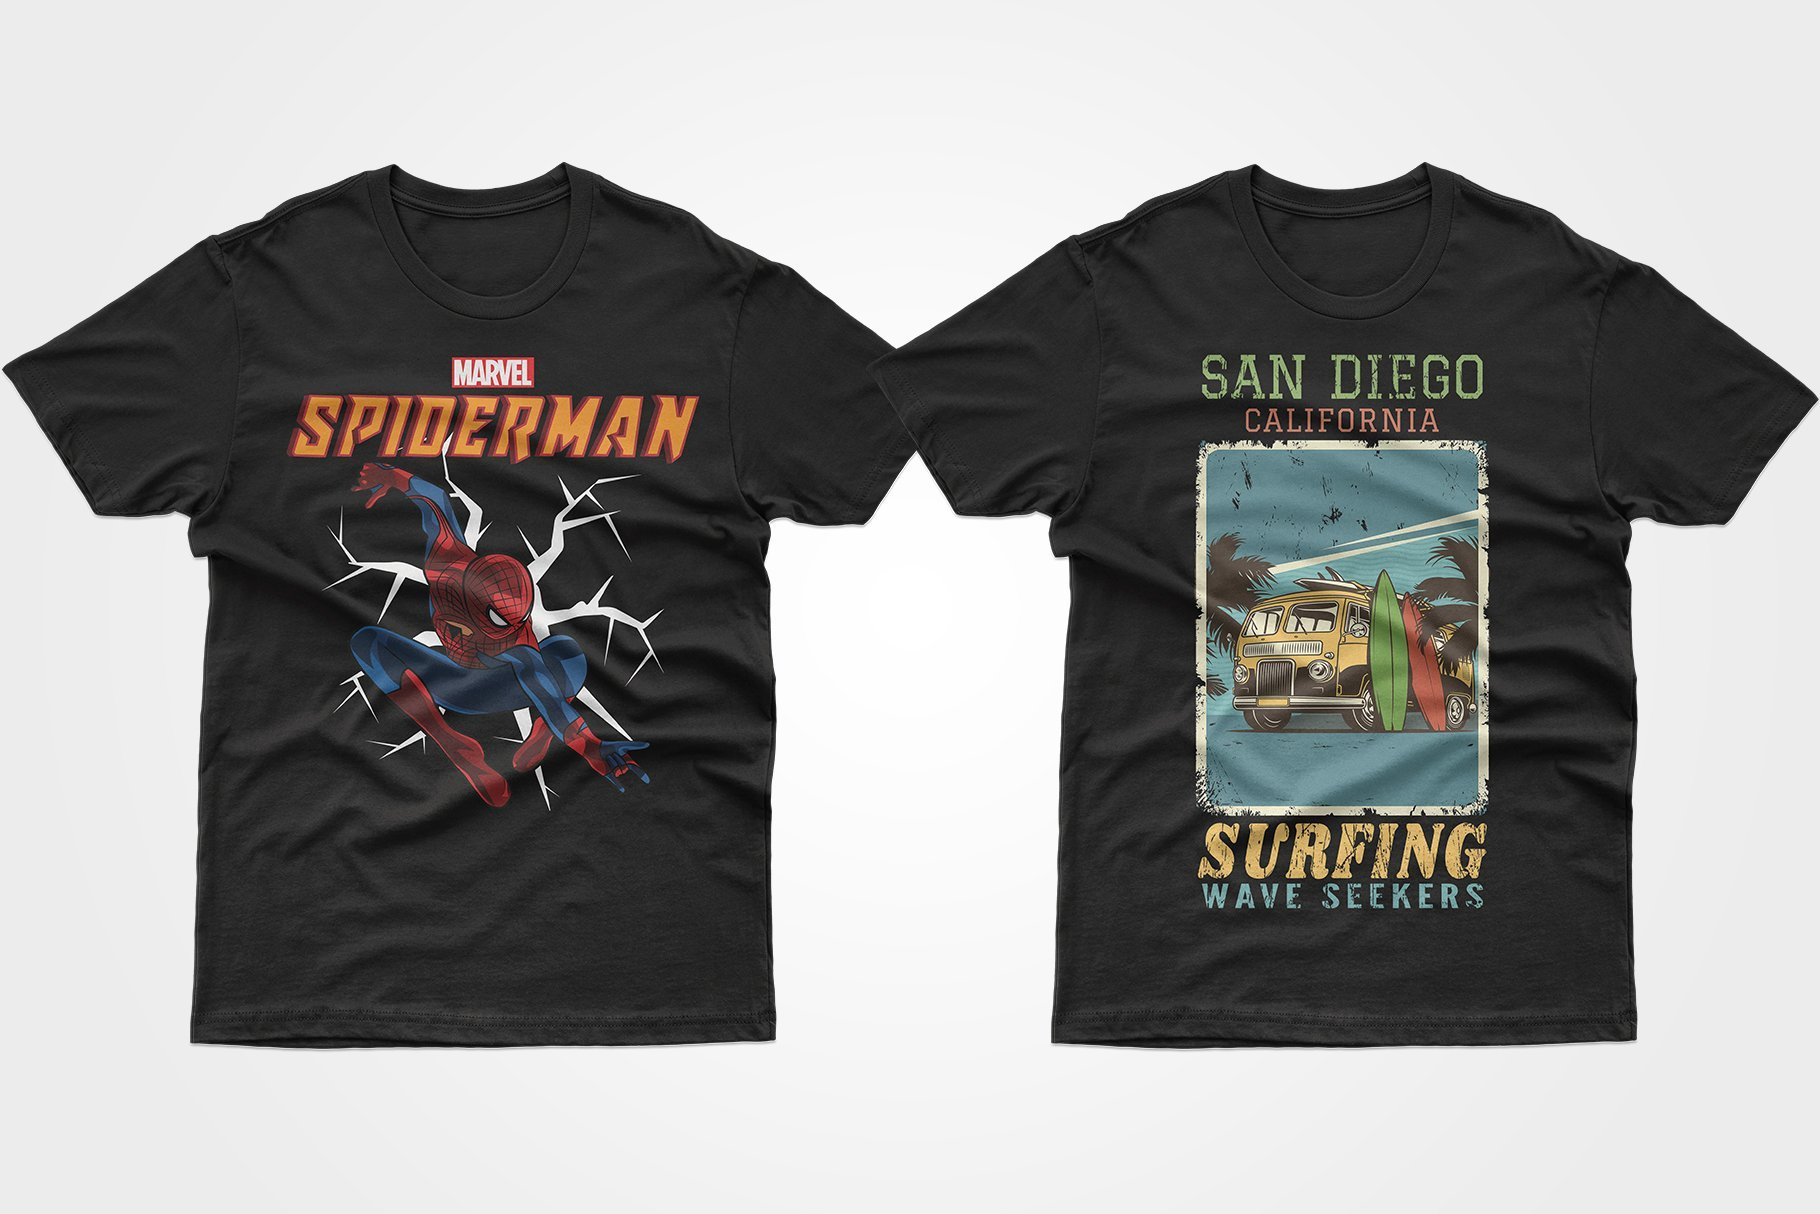 Two black T-shirts - one with a spiderman, one with a hippie truck.